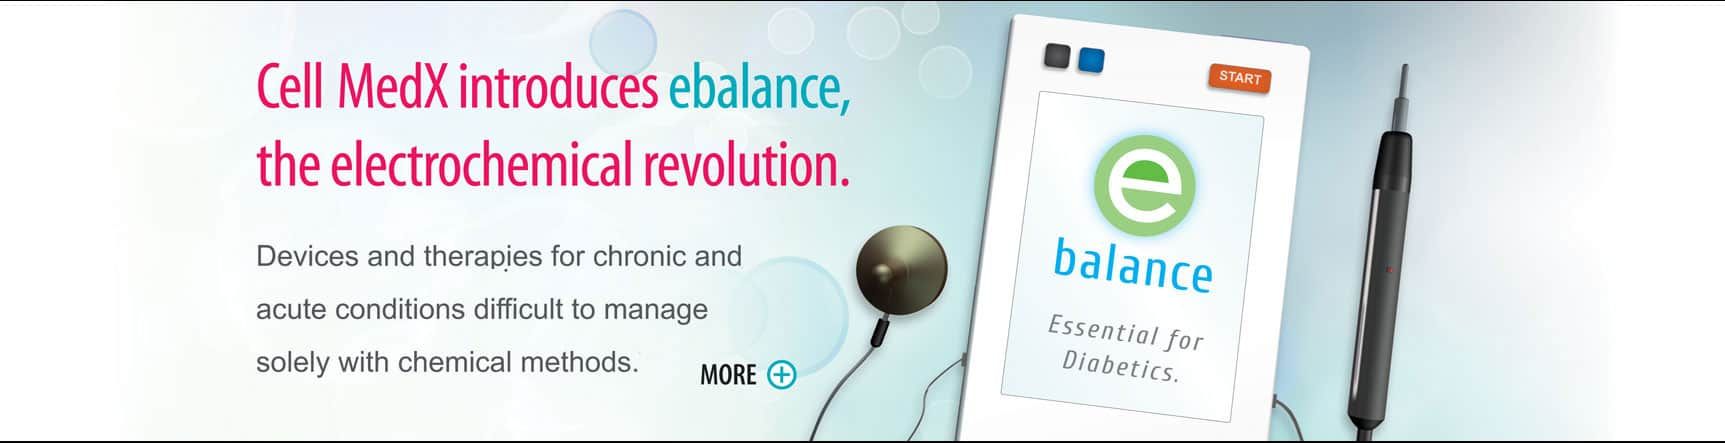 CellMedX introduces e balance the electrochemical revolution